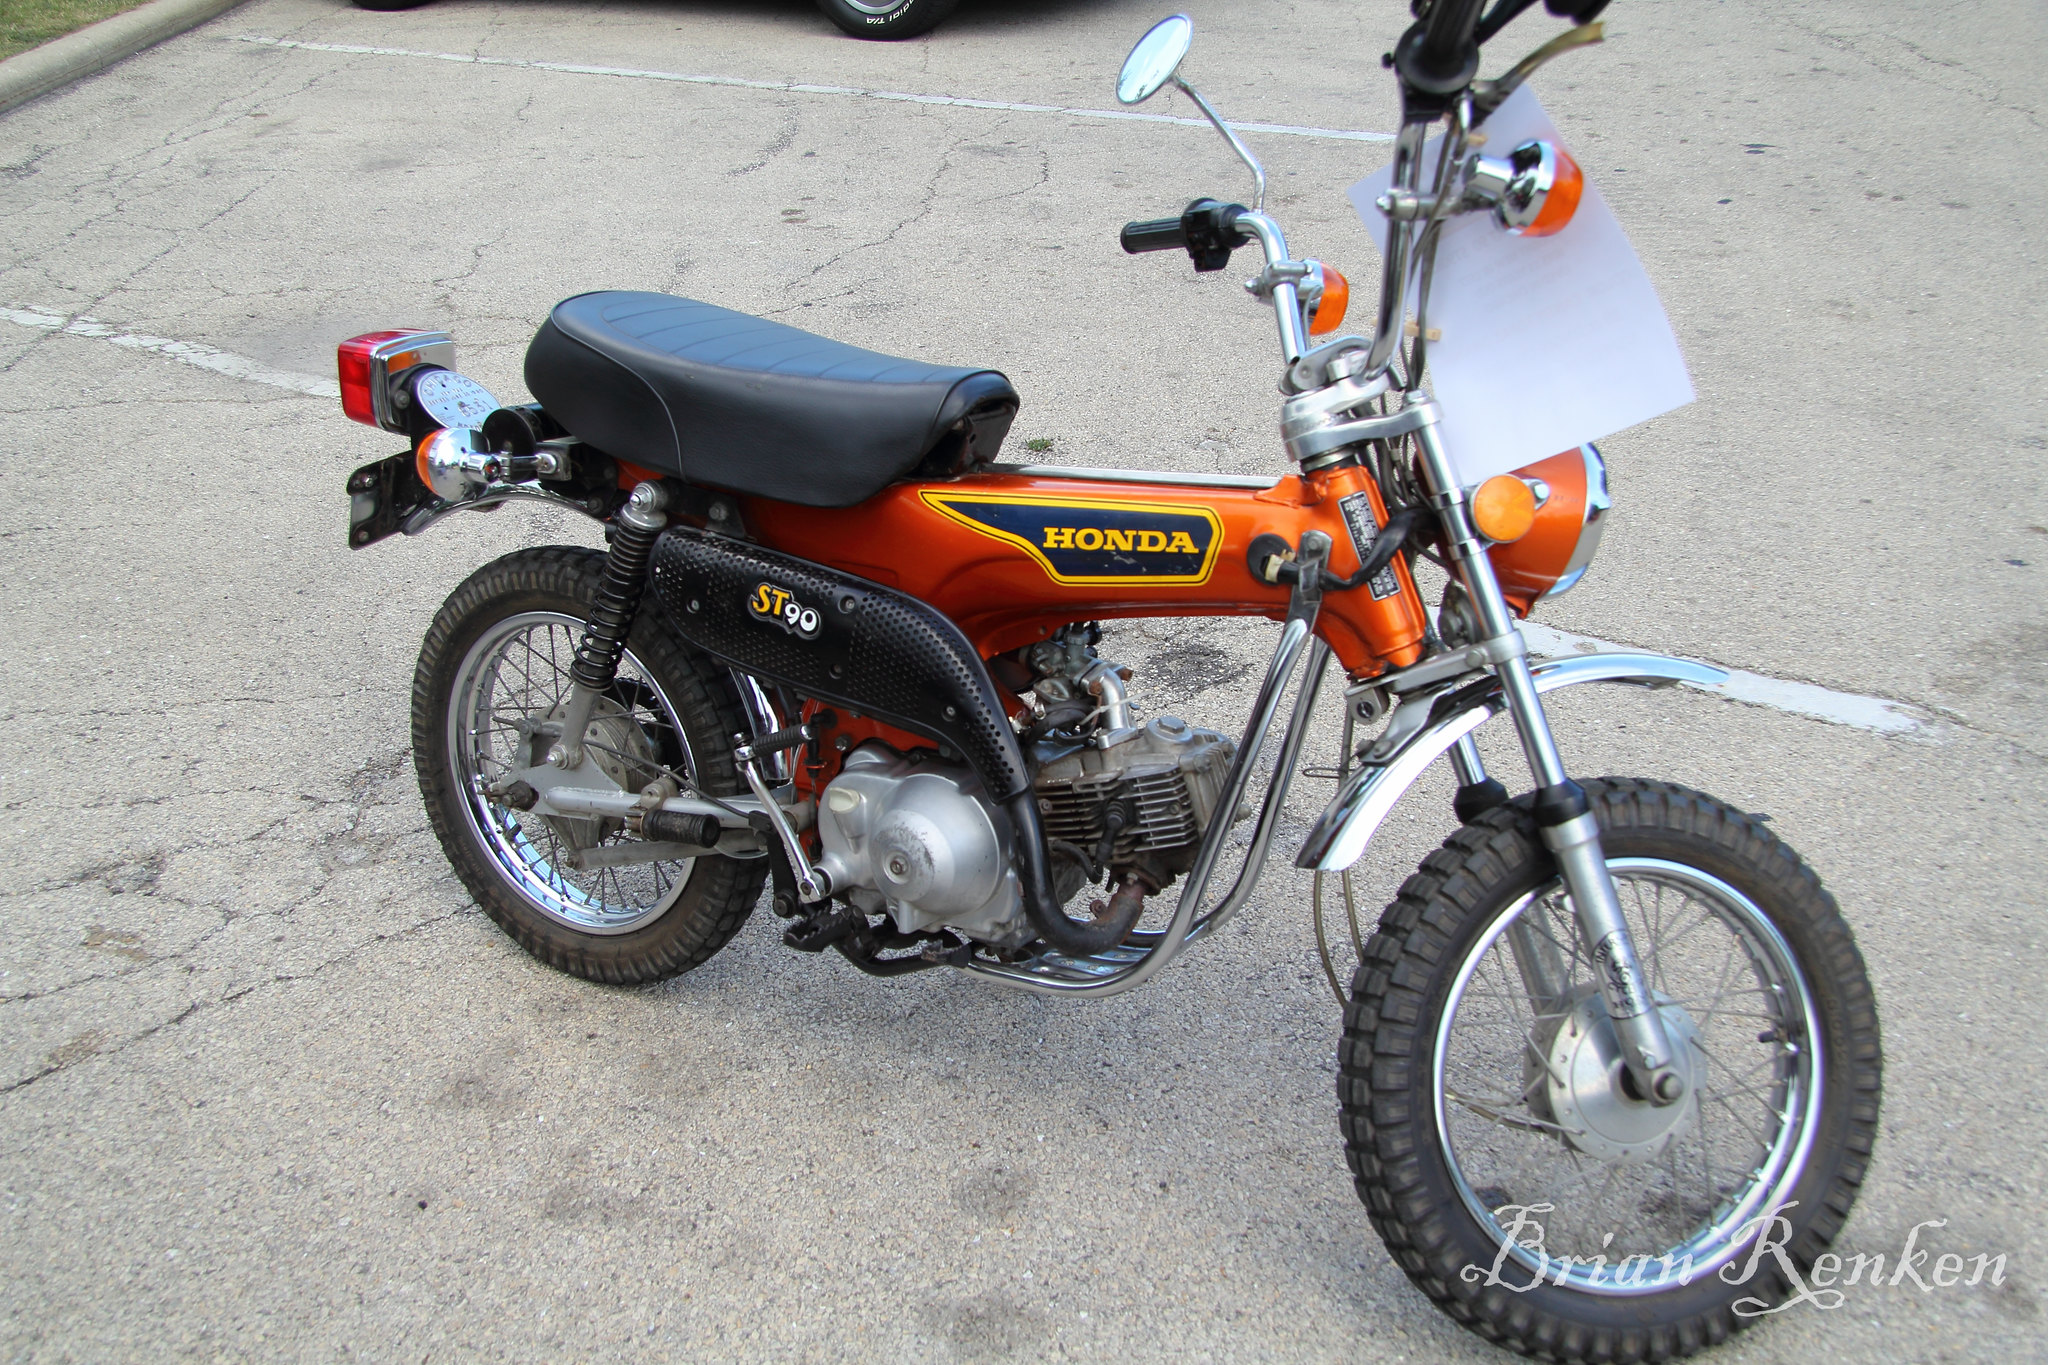 Honda St90 Motorcycle For Sale